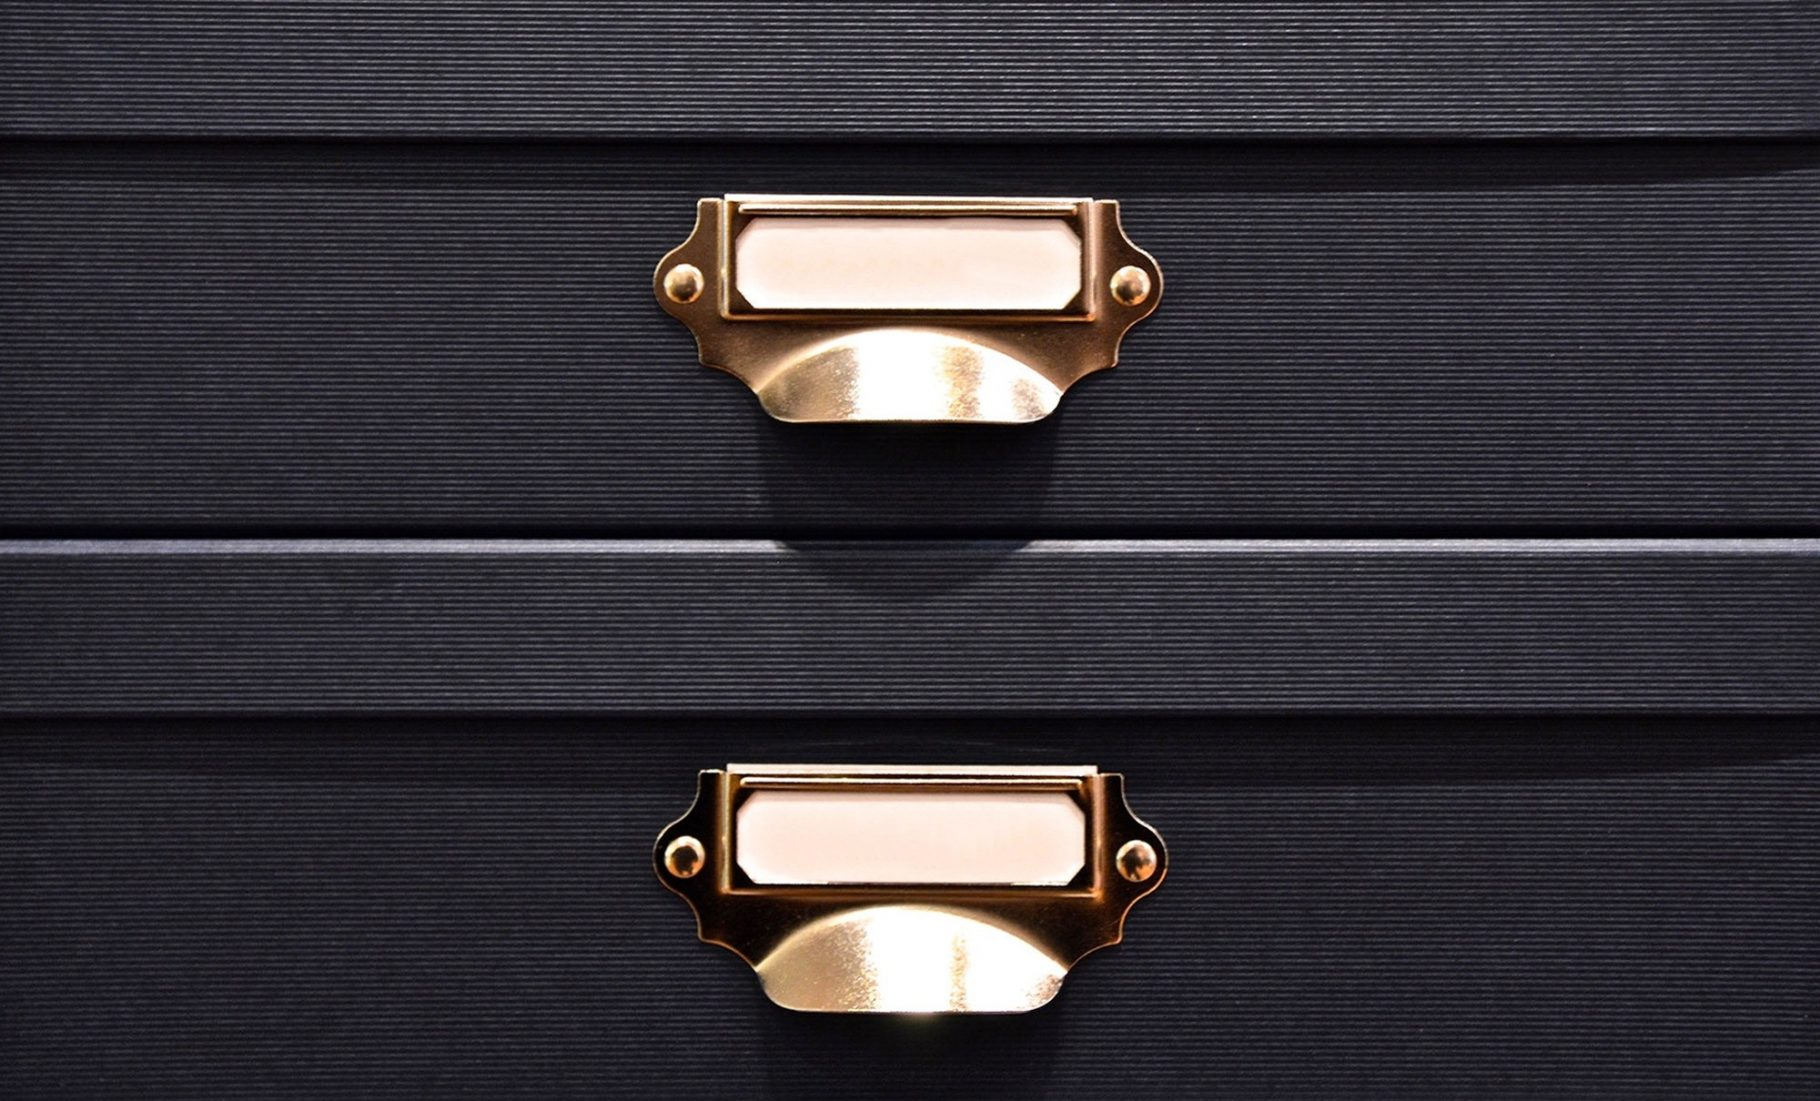 Close up image of black boxes for personal storage